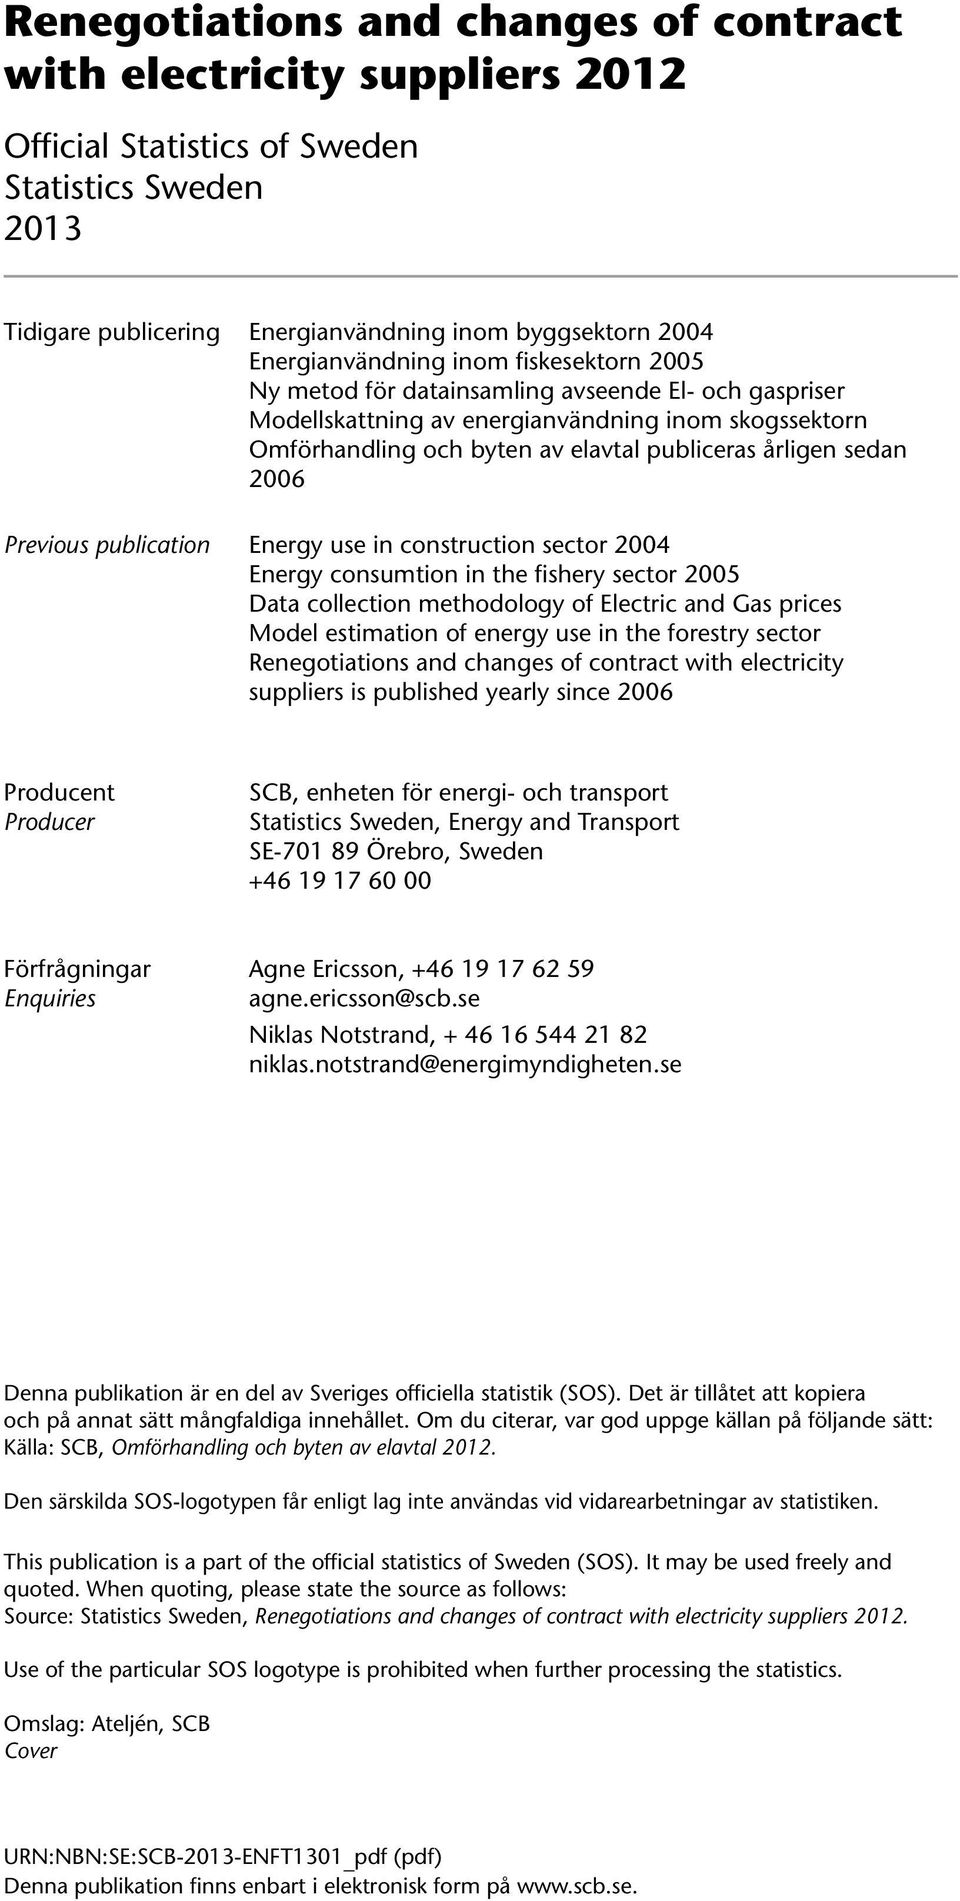 sedan 2006 Previous publication Energy use in construction sector 2004 Energy consumtion in the fishery sector 2005 Data collection methodology of Electric and Gas prices Model estimation of energy